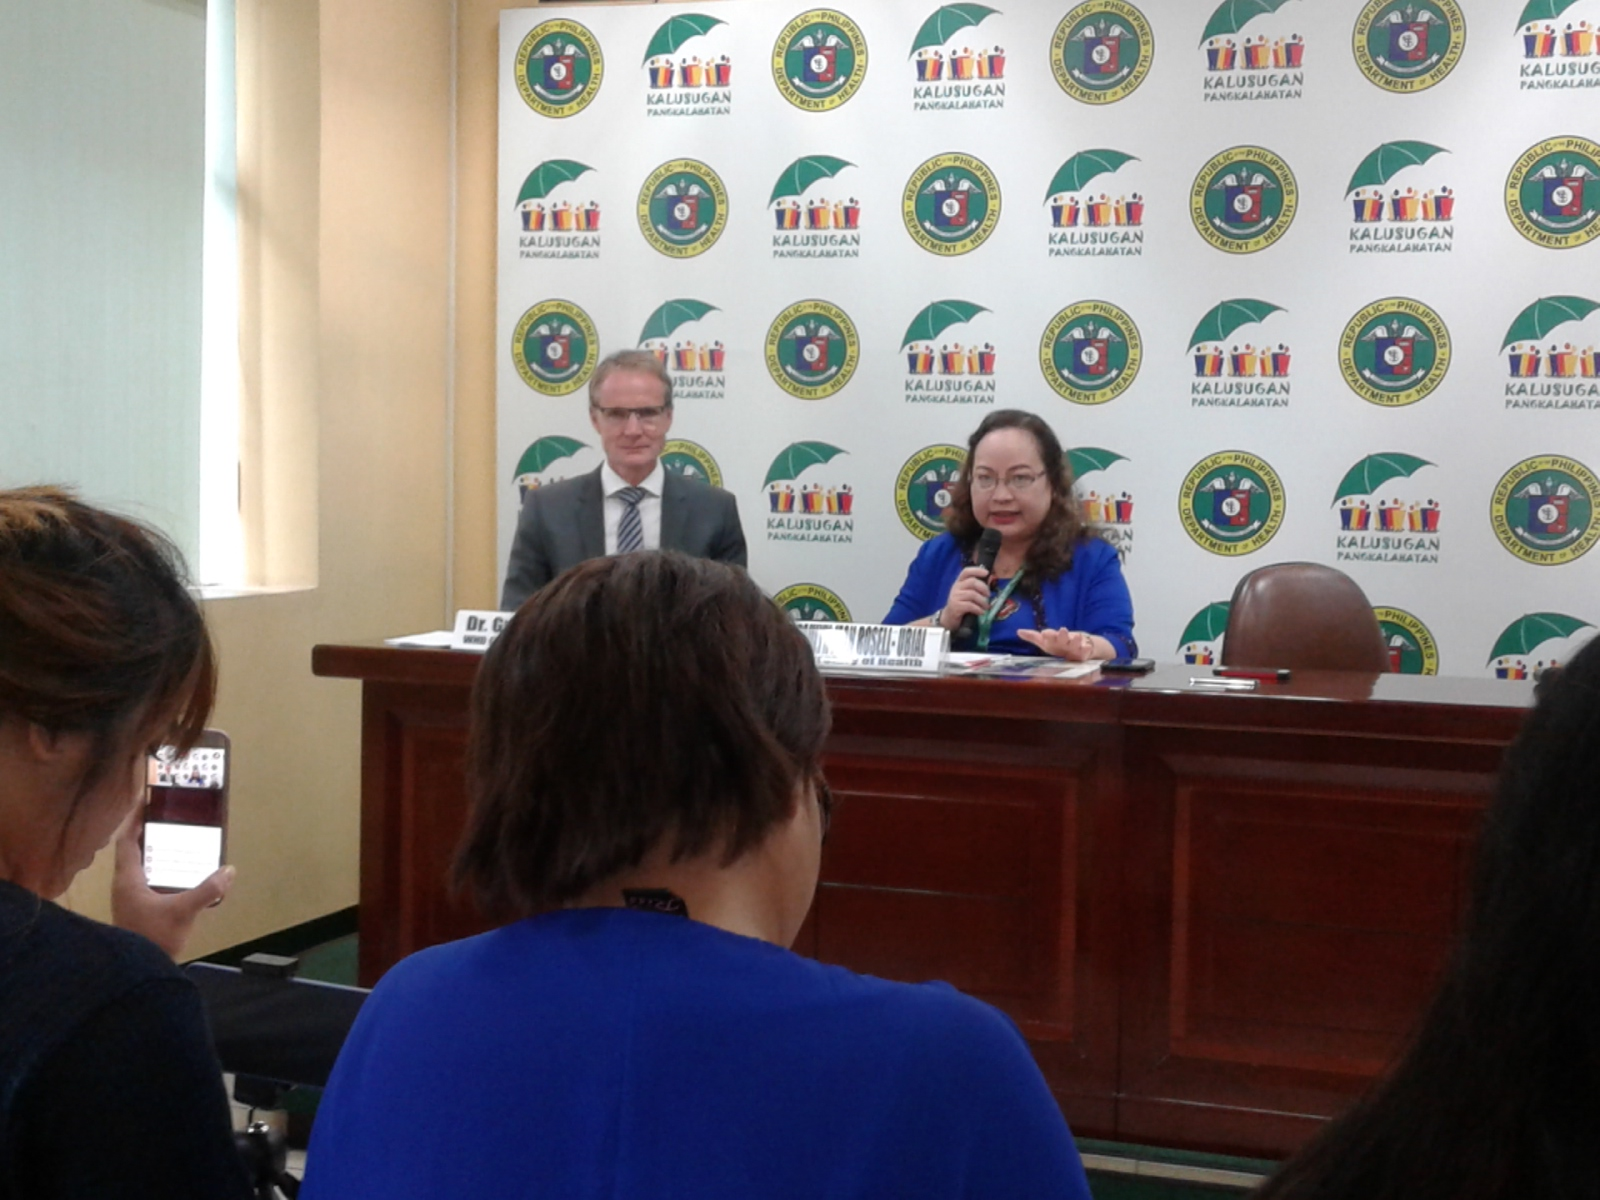 In a press briefing held at the DOH Media Relations Unit in Manila, Health Secretary Paulyn Jean Rosell-Ubial said the two new cases have been staying in the same house in Iloilo City, where the sixth confirmed Zika case detected earlier this month, is living. (PNA photo)